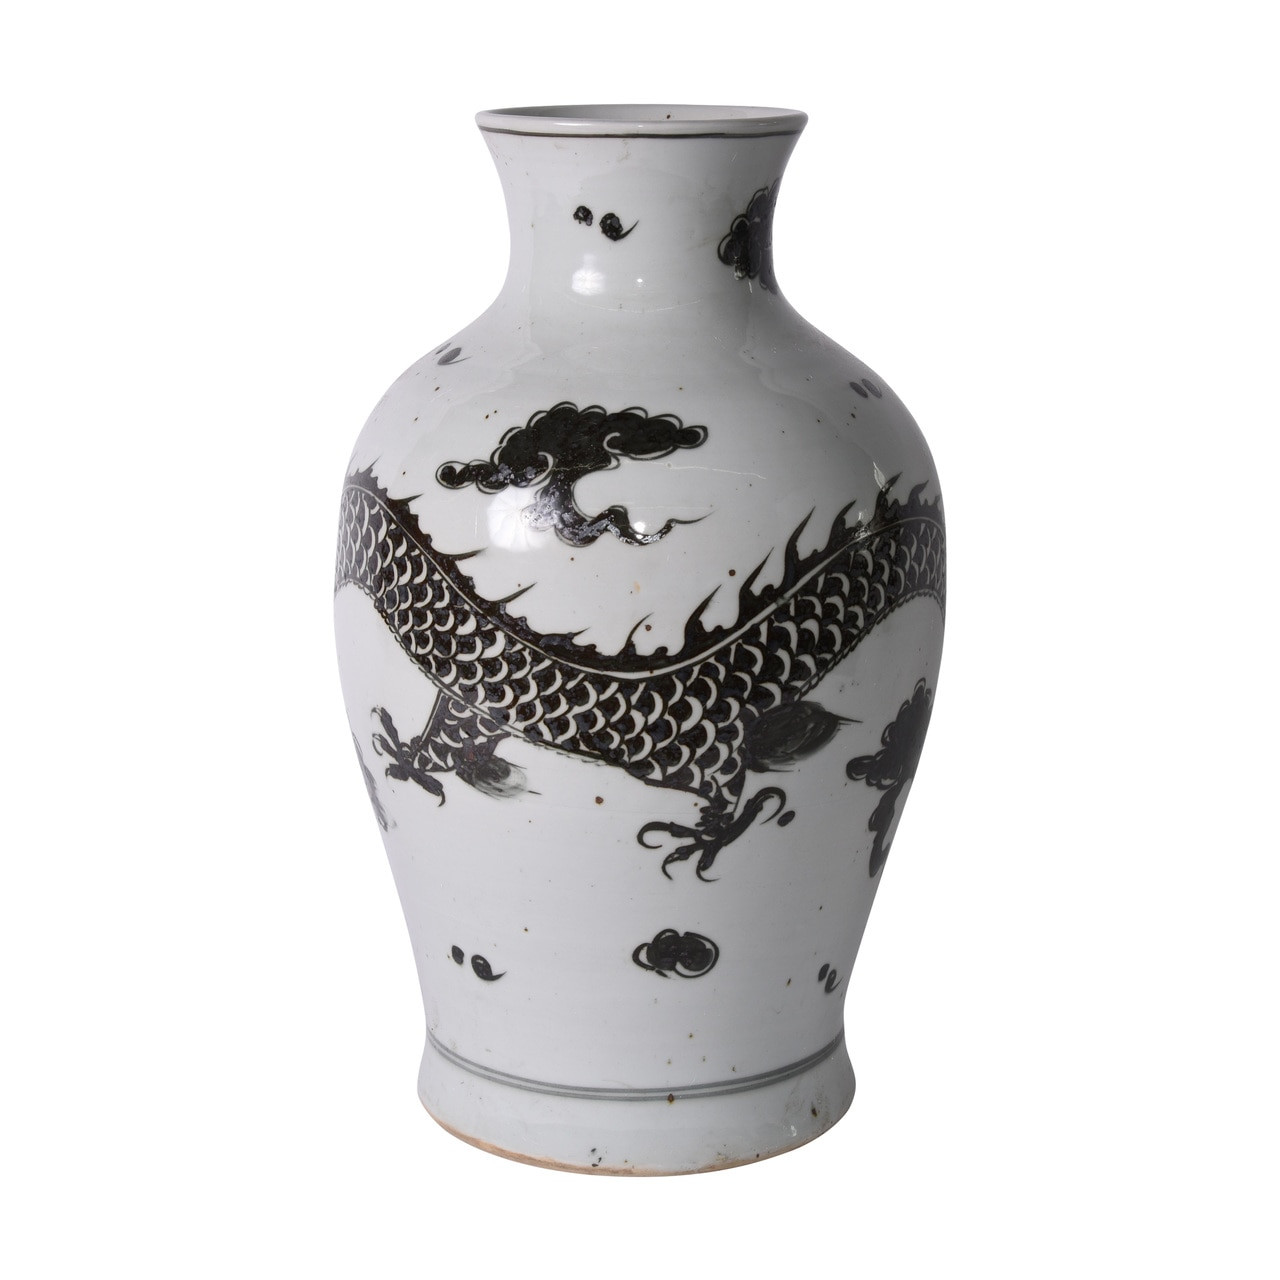 Porcelain Black Dragon Fairy Vase - 2 Sizes